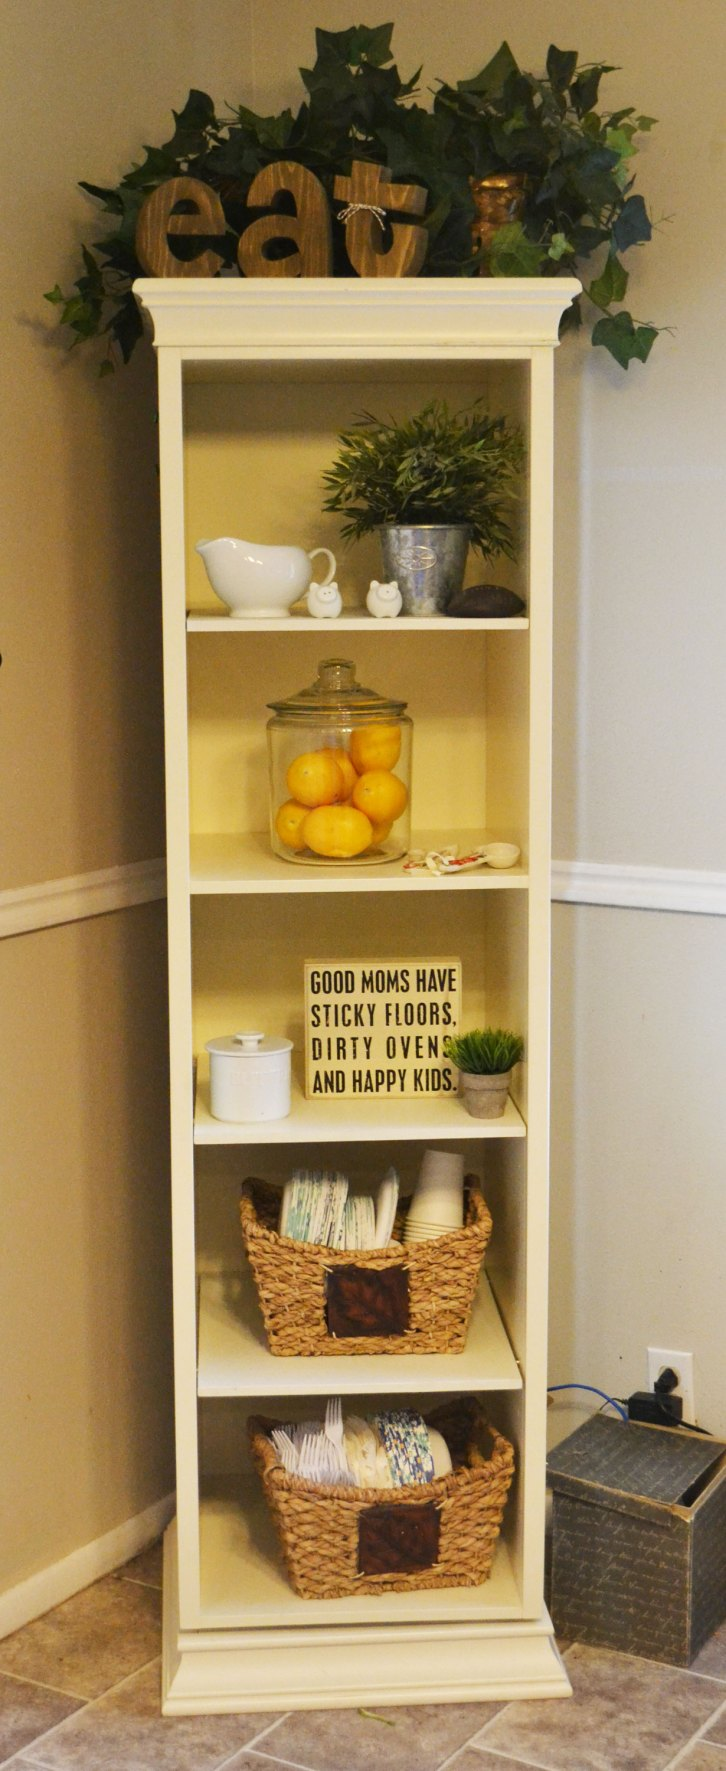 How to create functional open kitchen shelves | My Silly Squirts